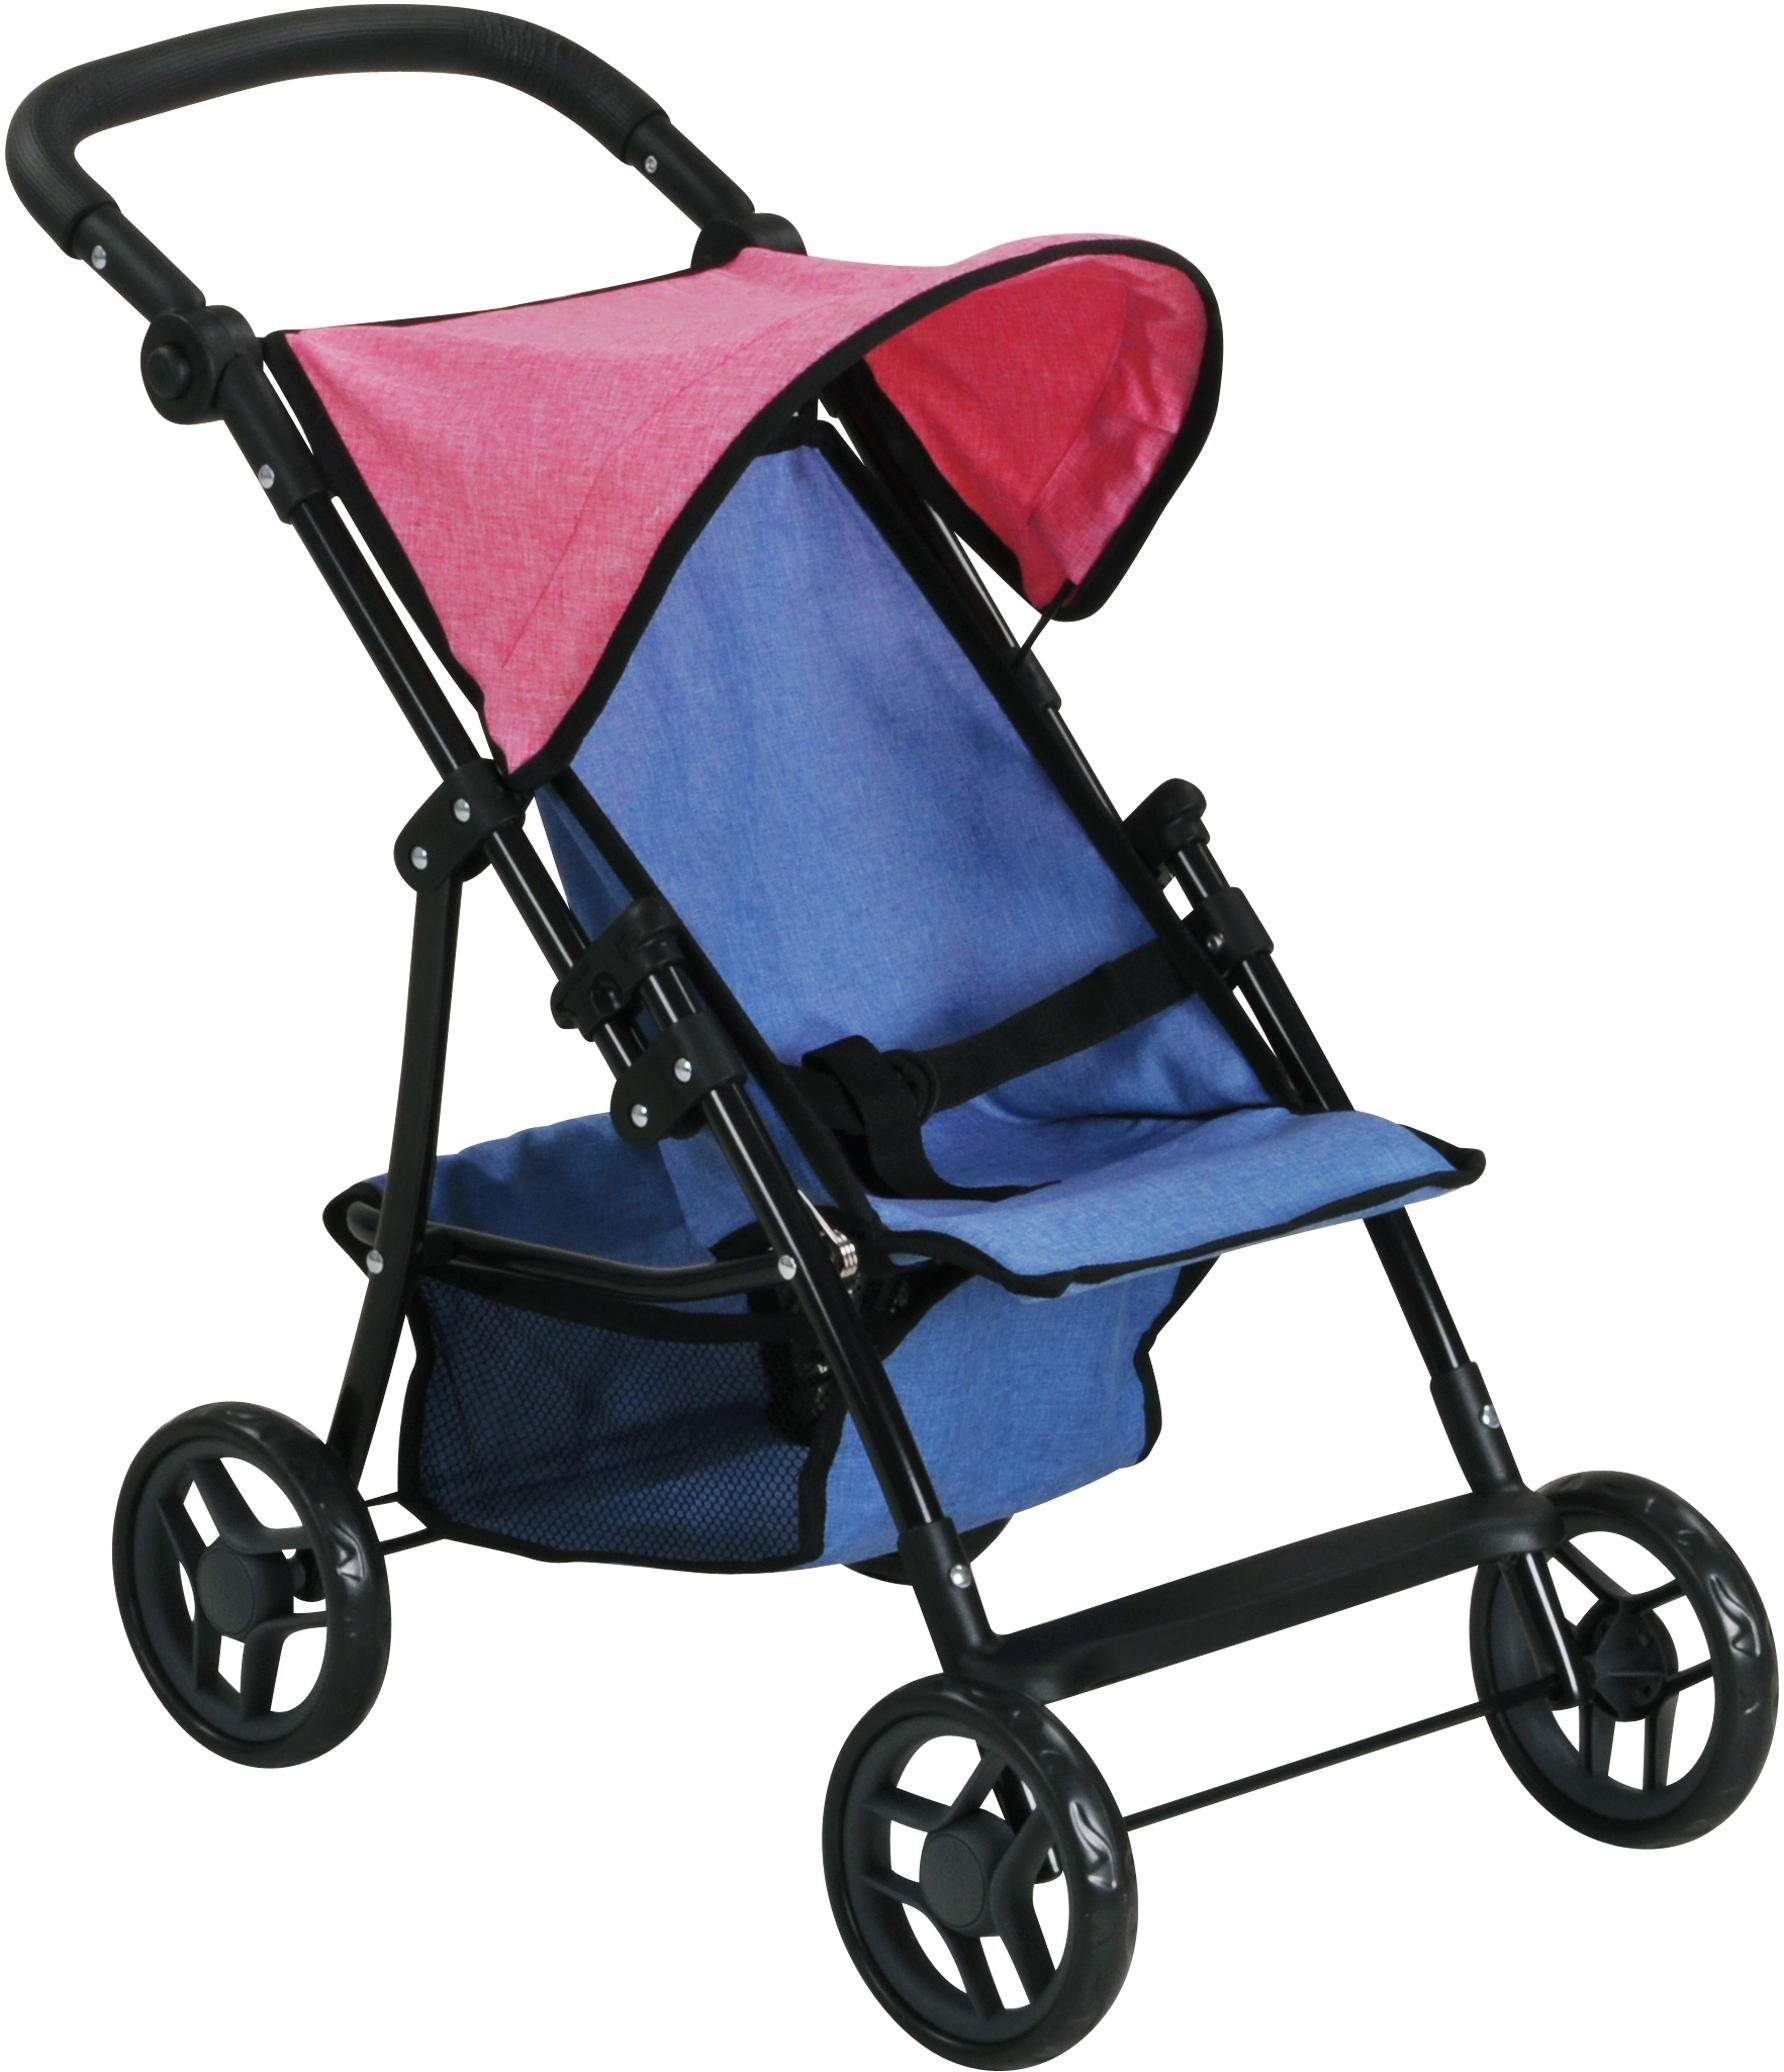 knorr toys Puppenbuggy, »Liba - jeans blue«